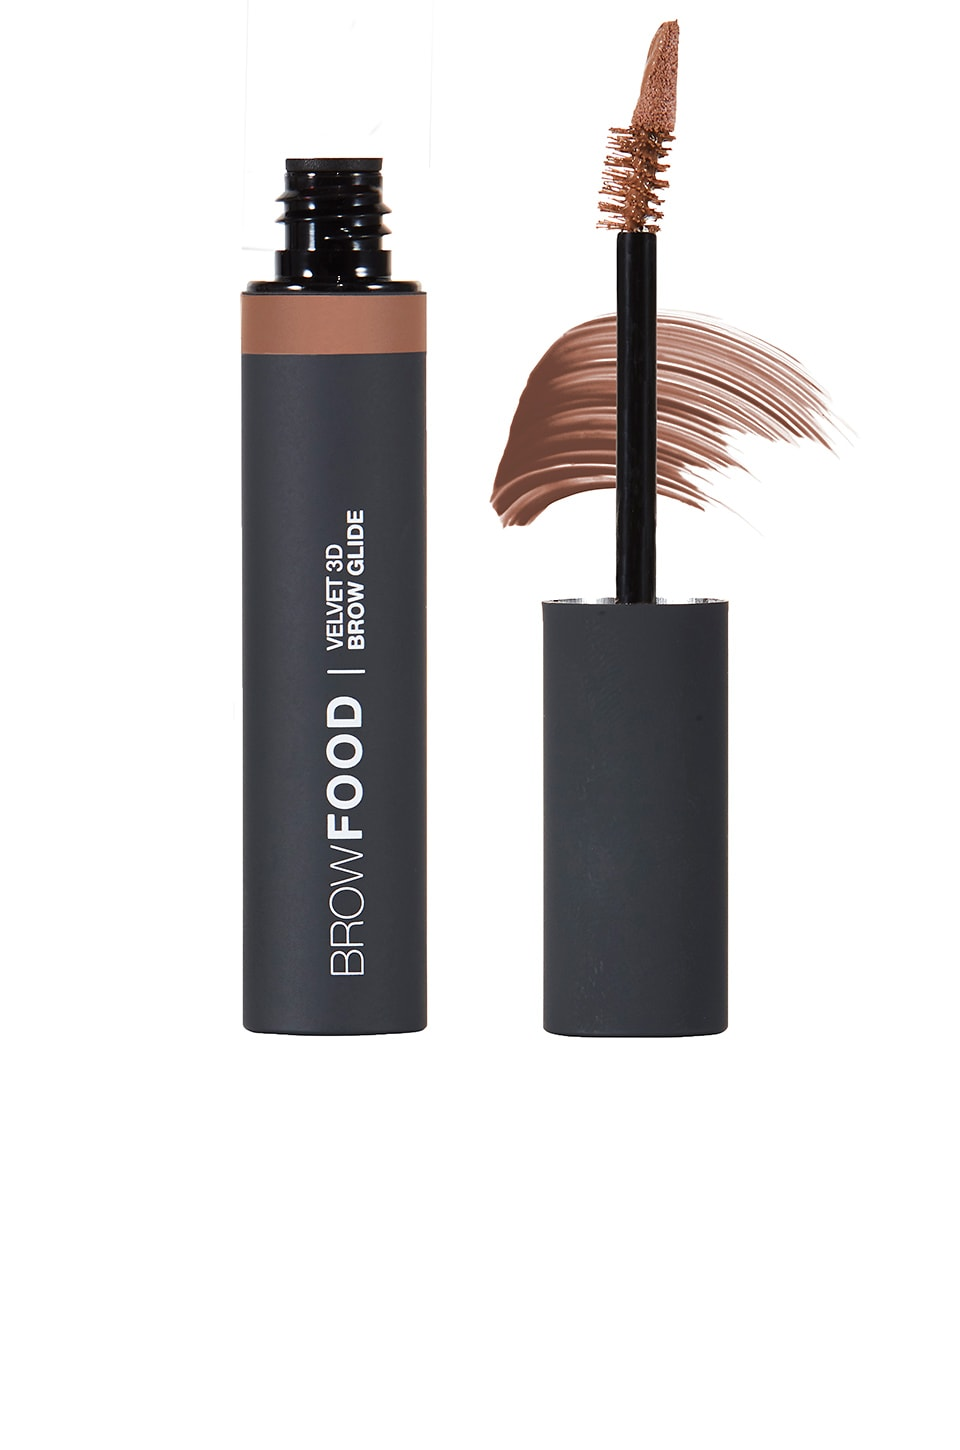 Lashfood Velvet 3D Brow Glide in Dark Blonde